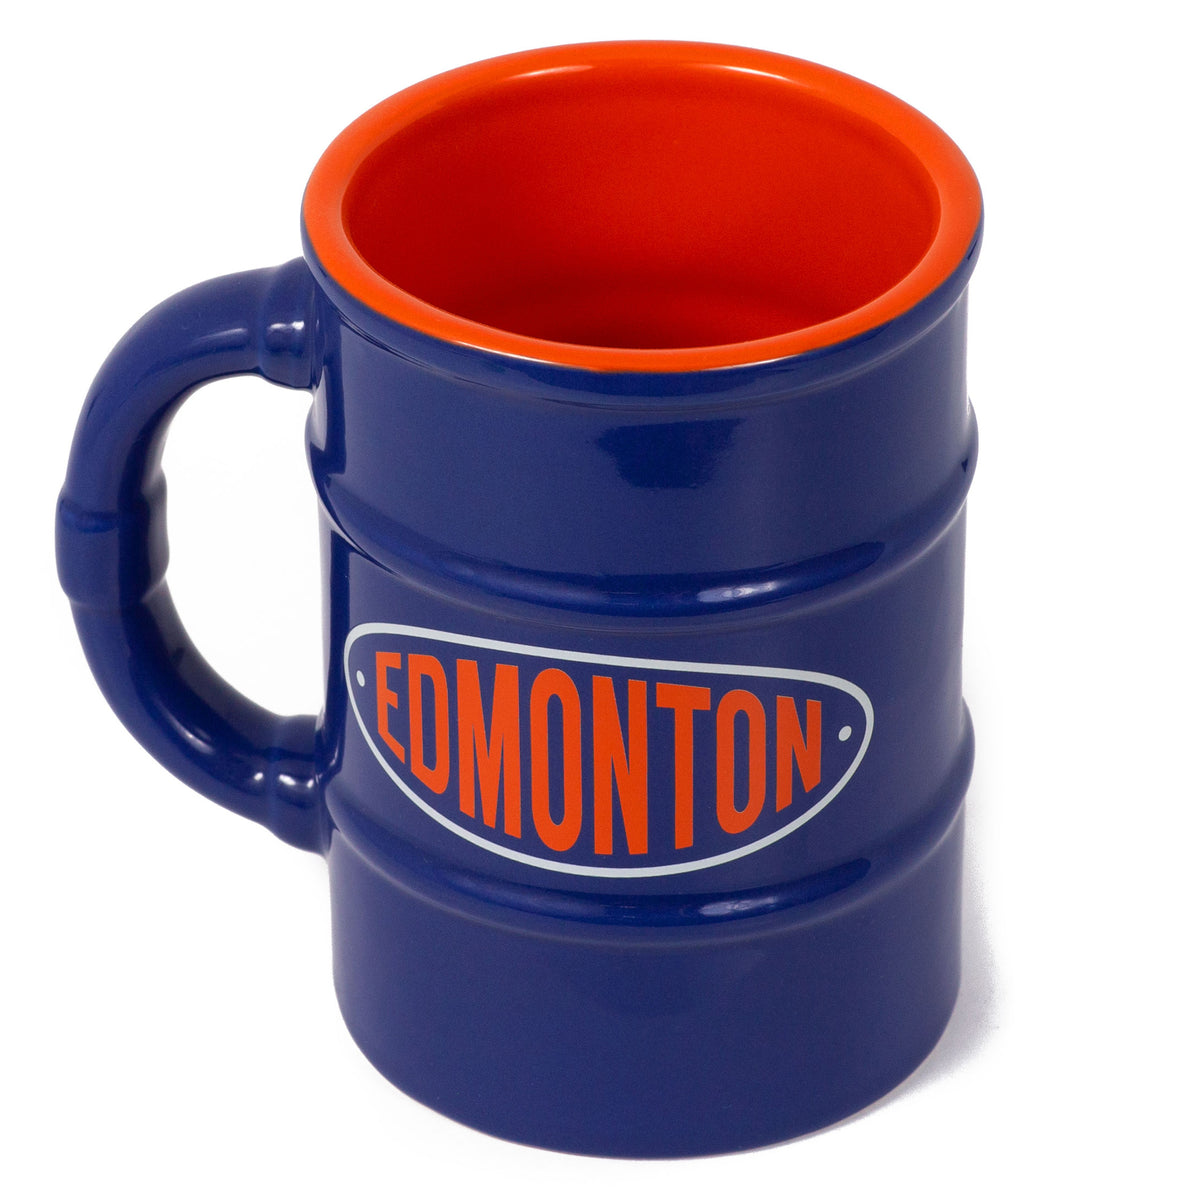 Edmonton Oil Drum Mug - Main and Local